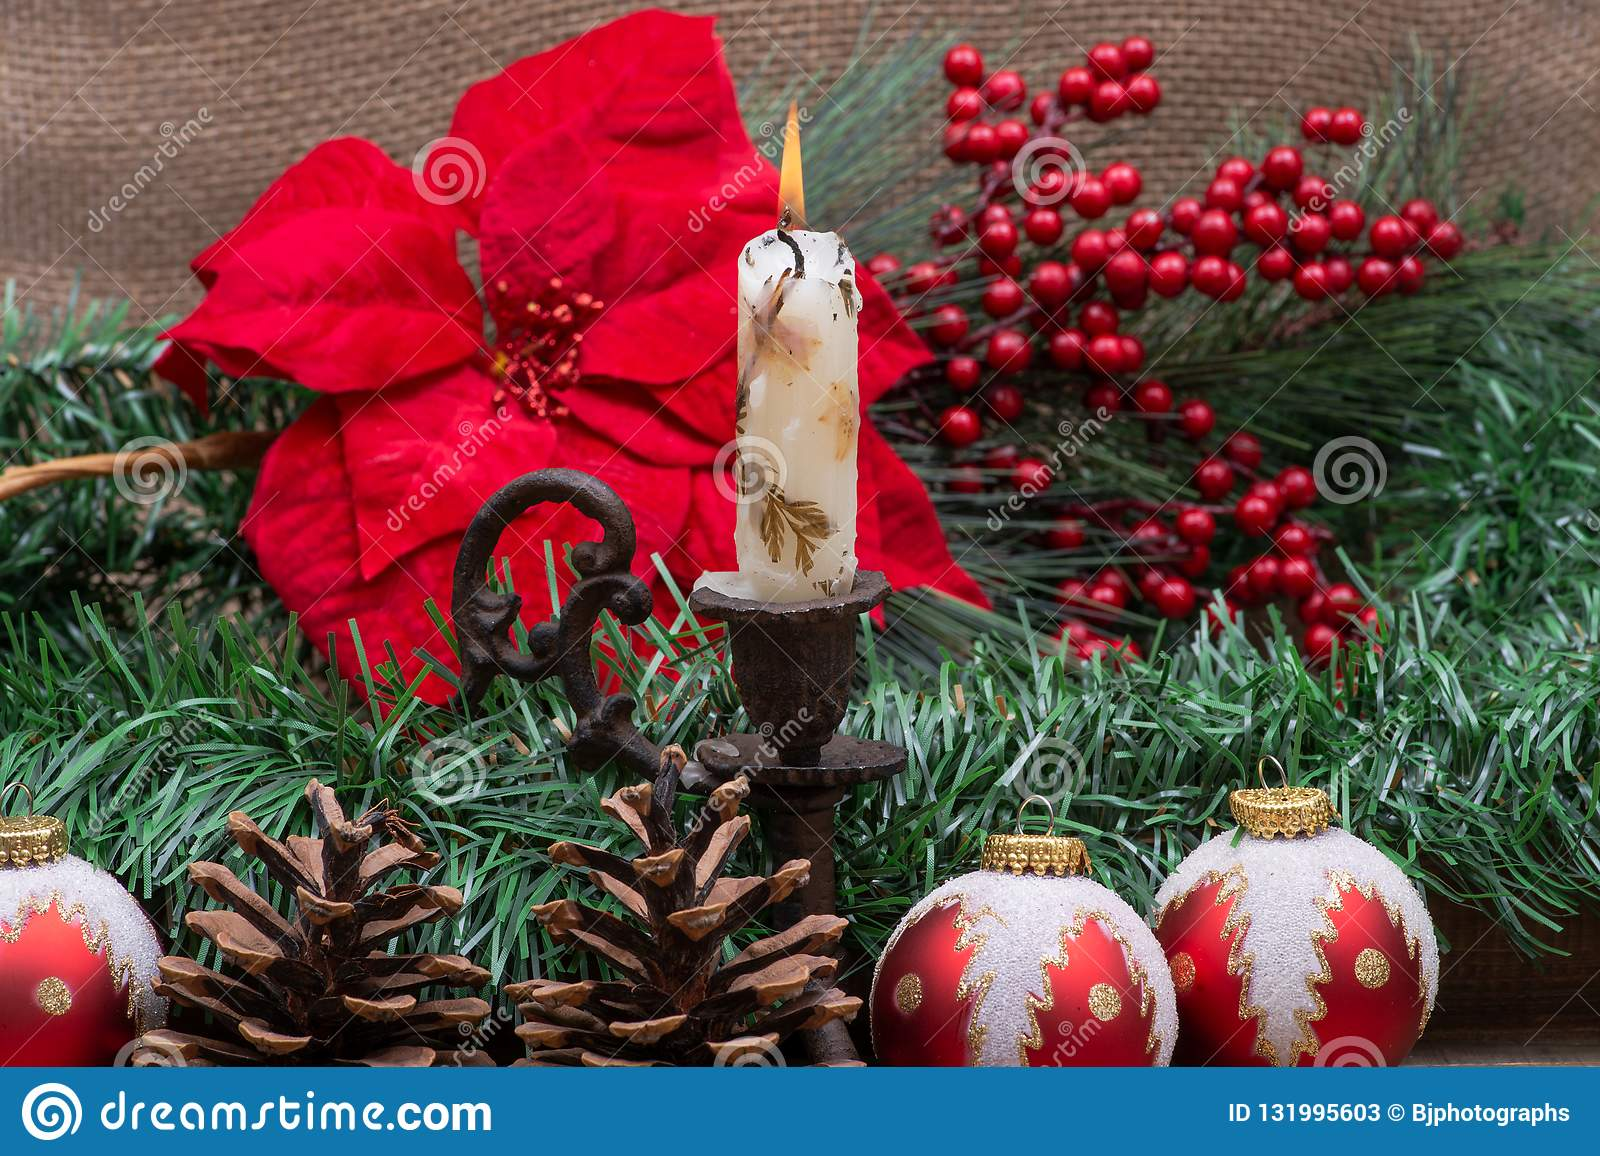 e9d5ab3994f5 Winter Holiday Decoration: Blooming Red Poinsettia, Pine, Berry Bush ...